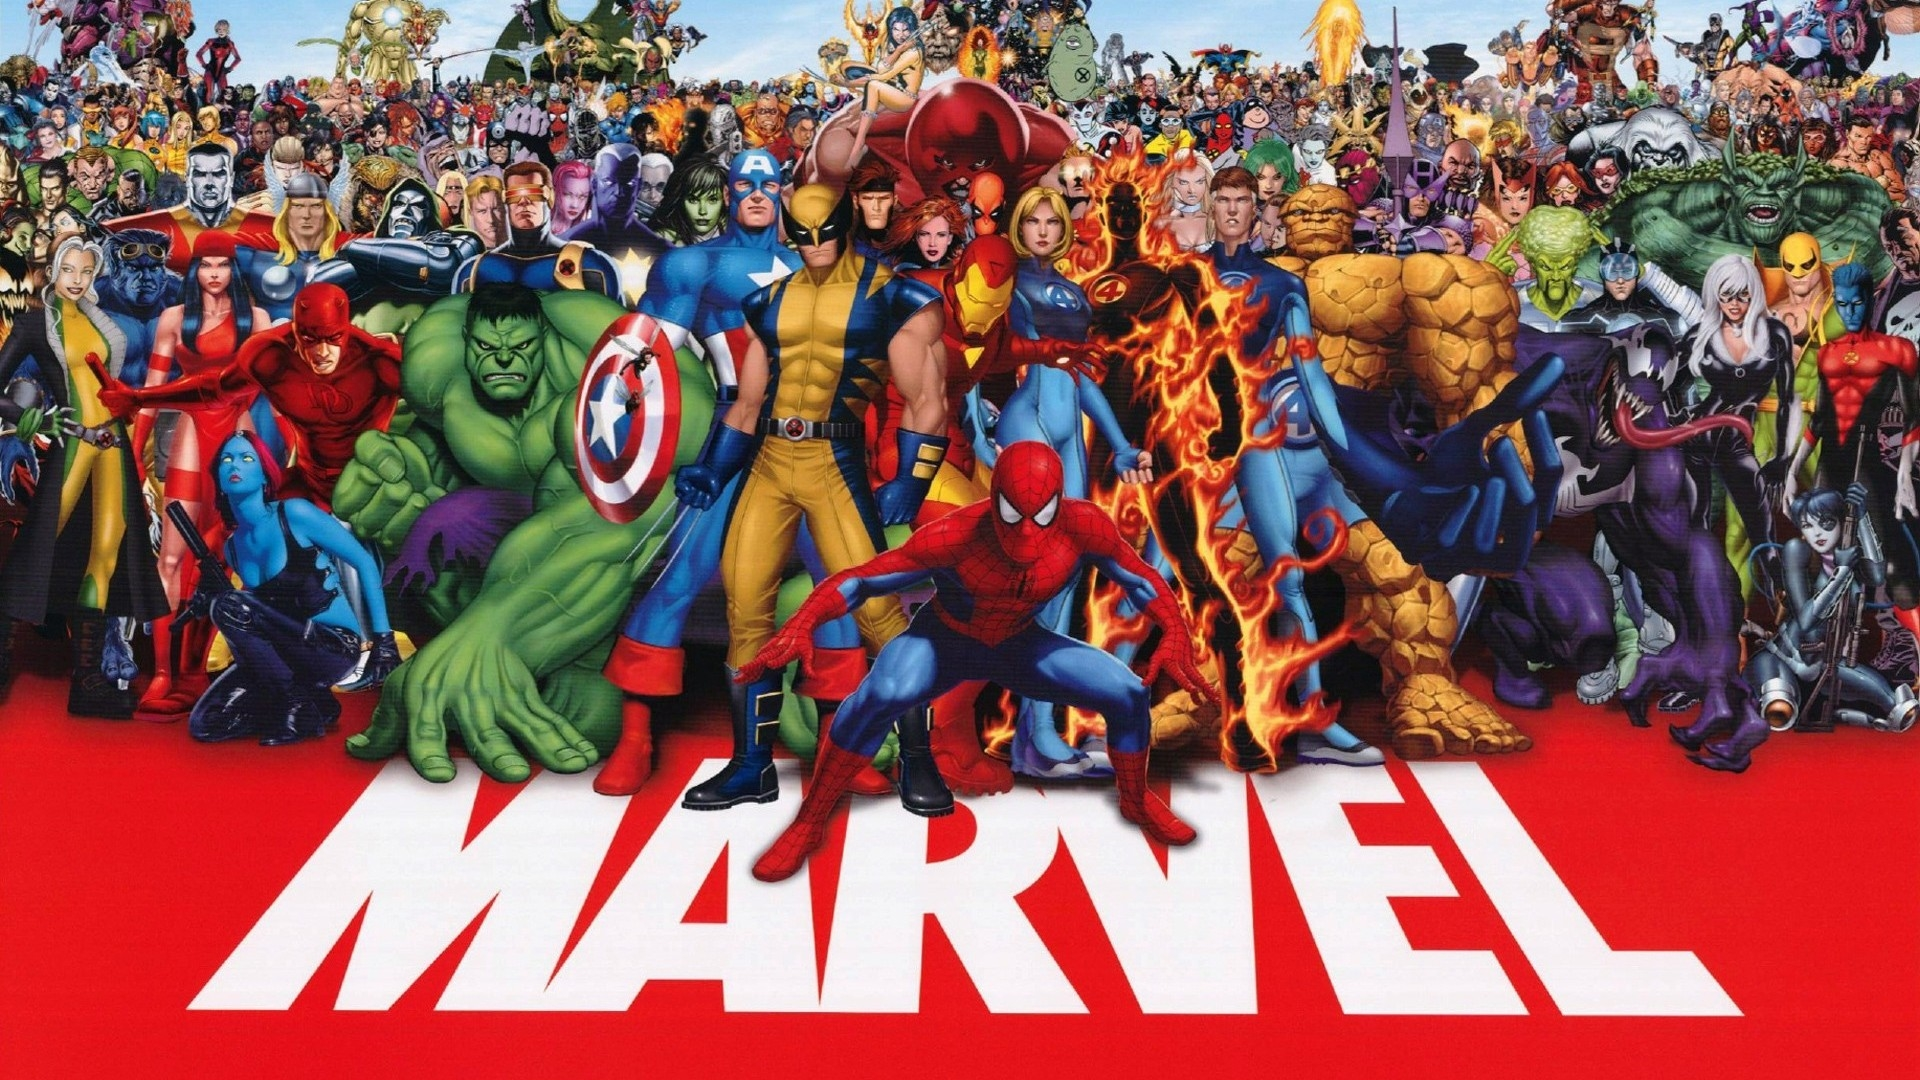 marvel comics superheroes avengers 1920x1080